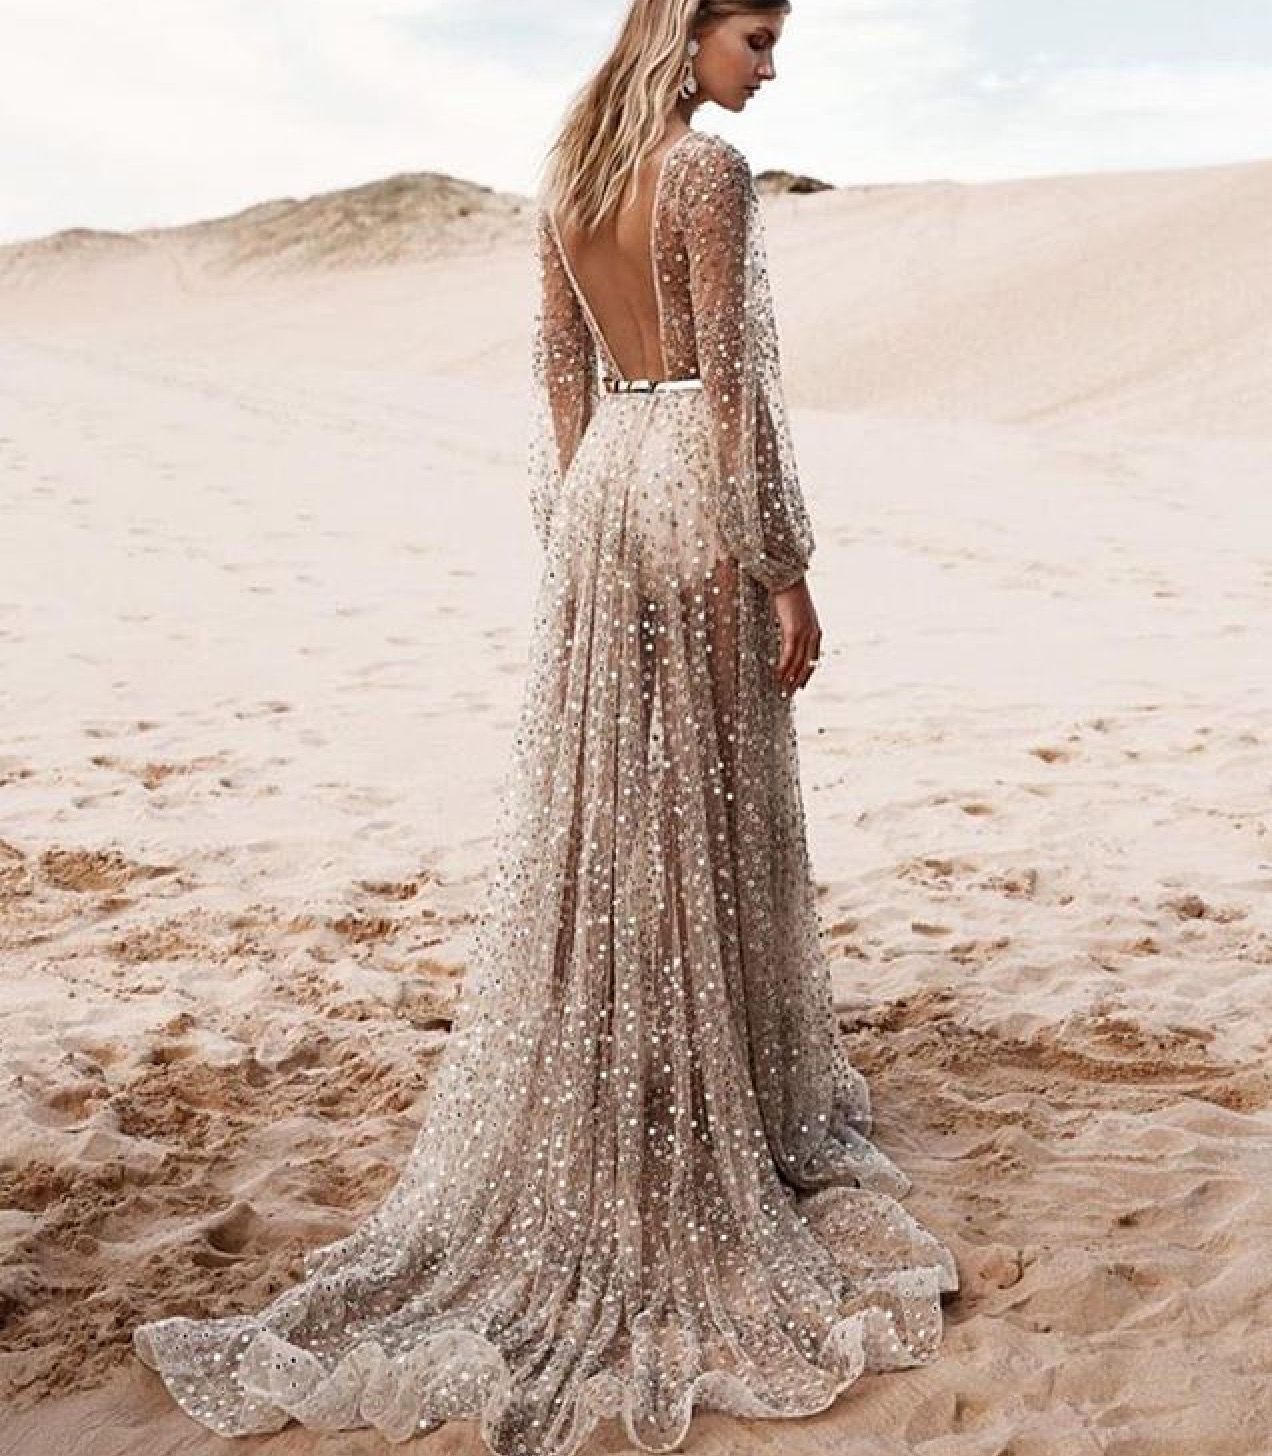 Pin by cristina on formal and fancy pinterest formal and fancy